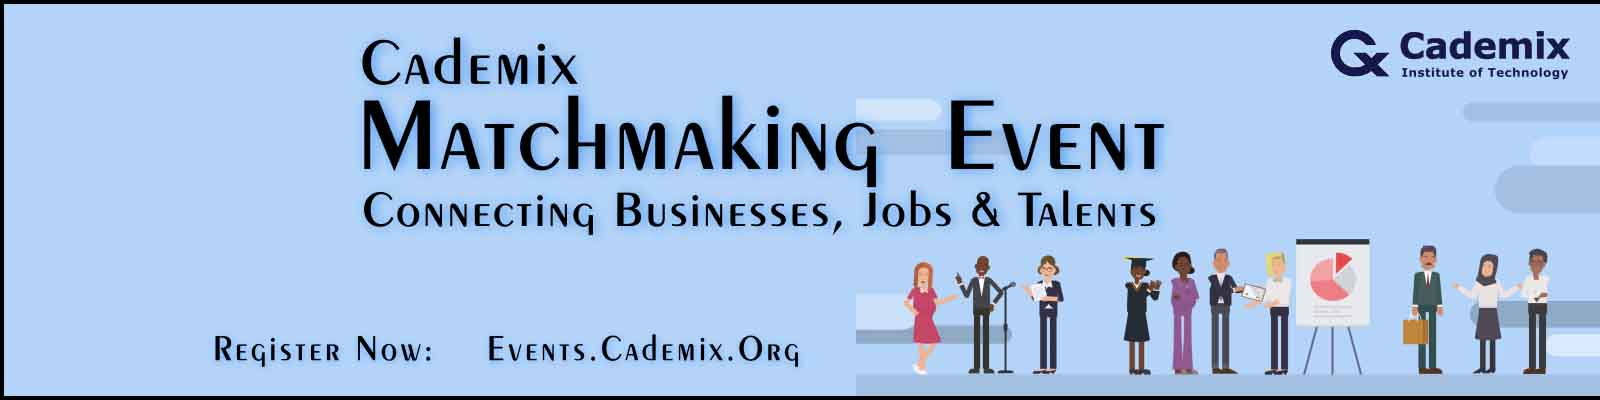 Cademix Poster Square Matchmaking Event Banner